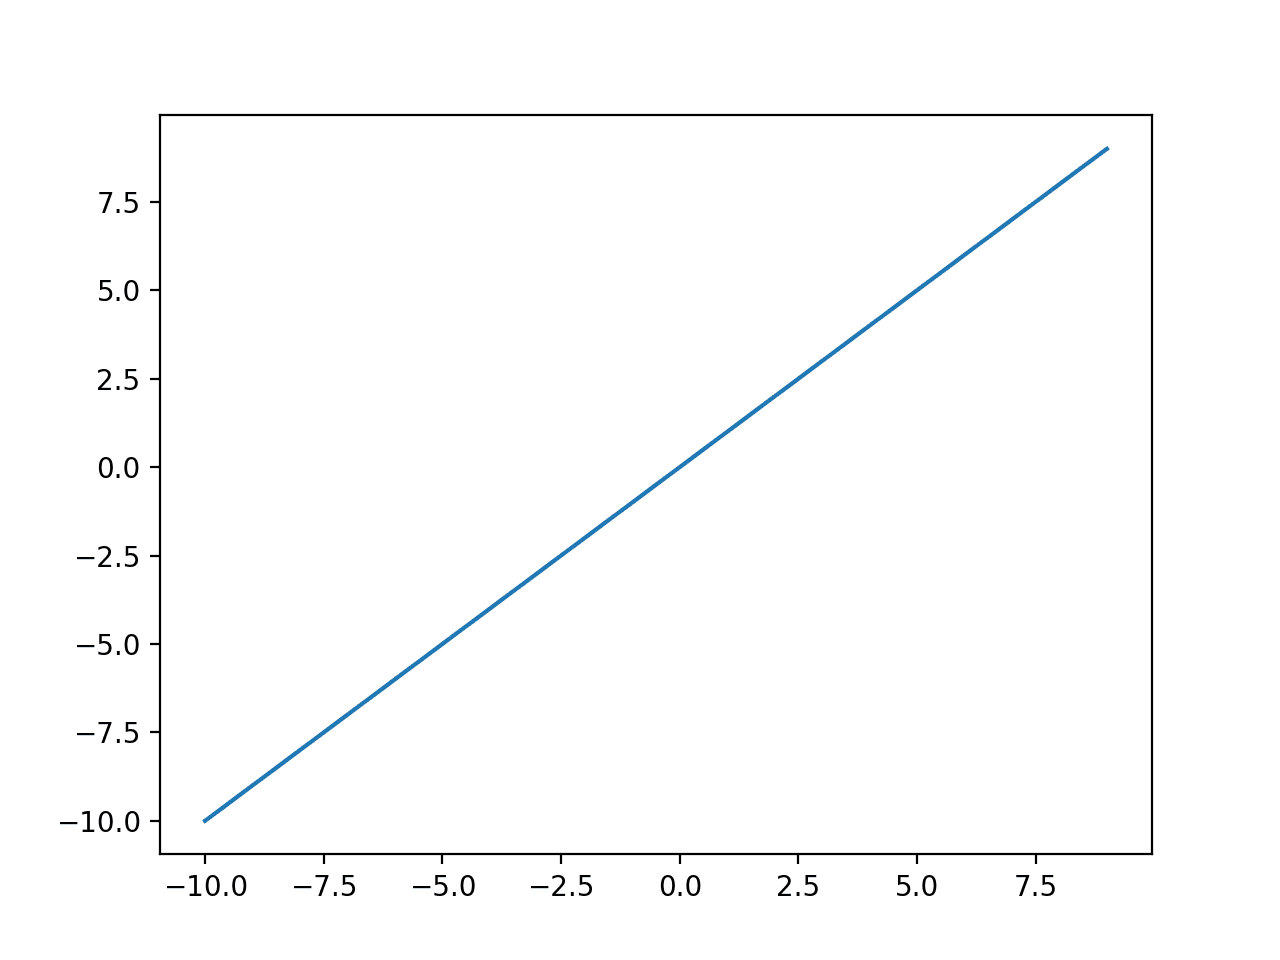 Plot of Inputs vs. Outputs for the Linear Activation Function